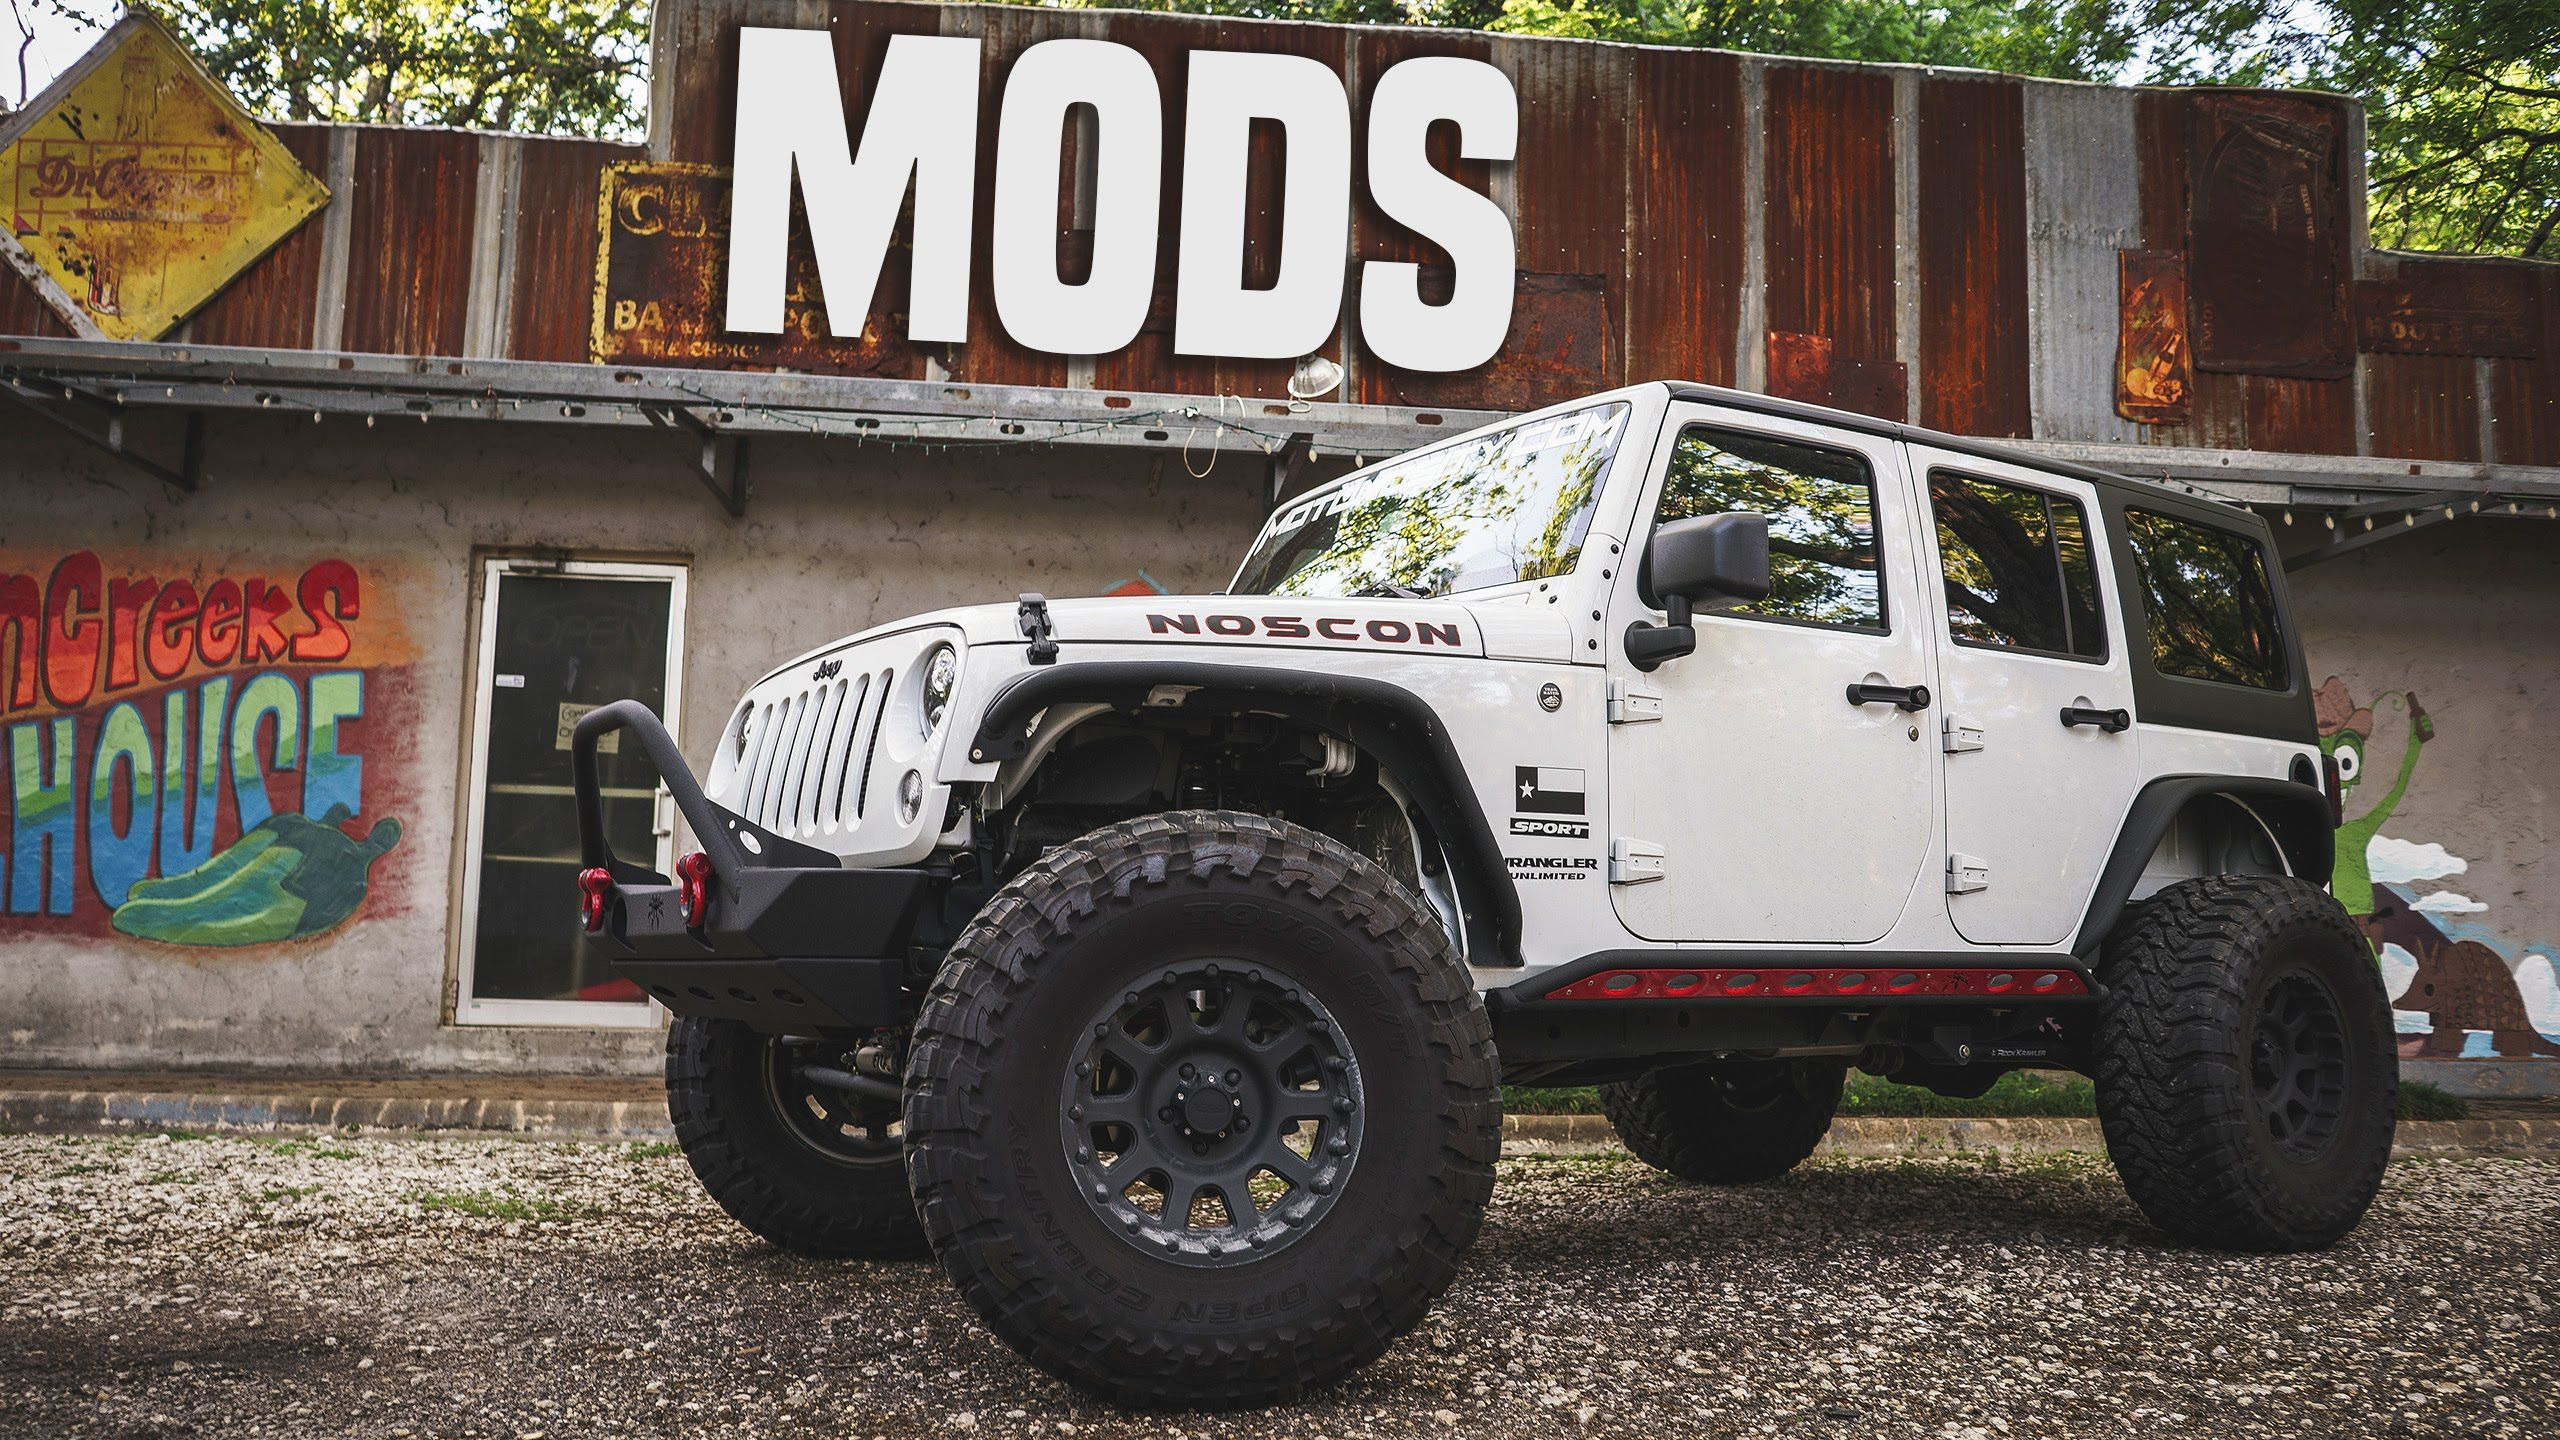 bds jeep kits lift jk fancybox kit suspension